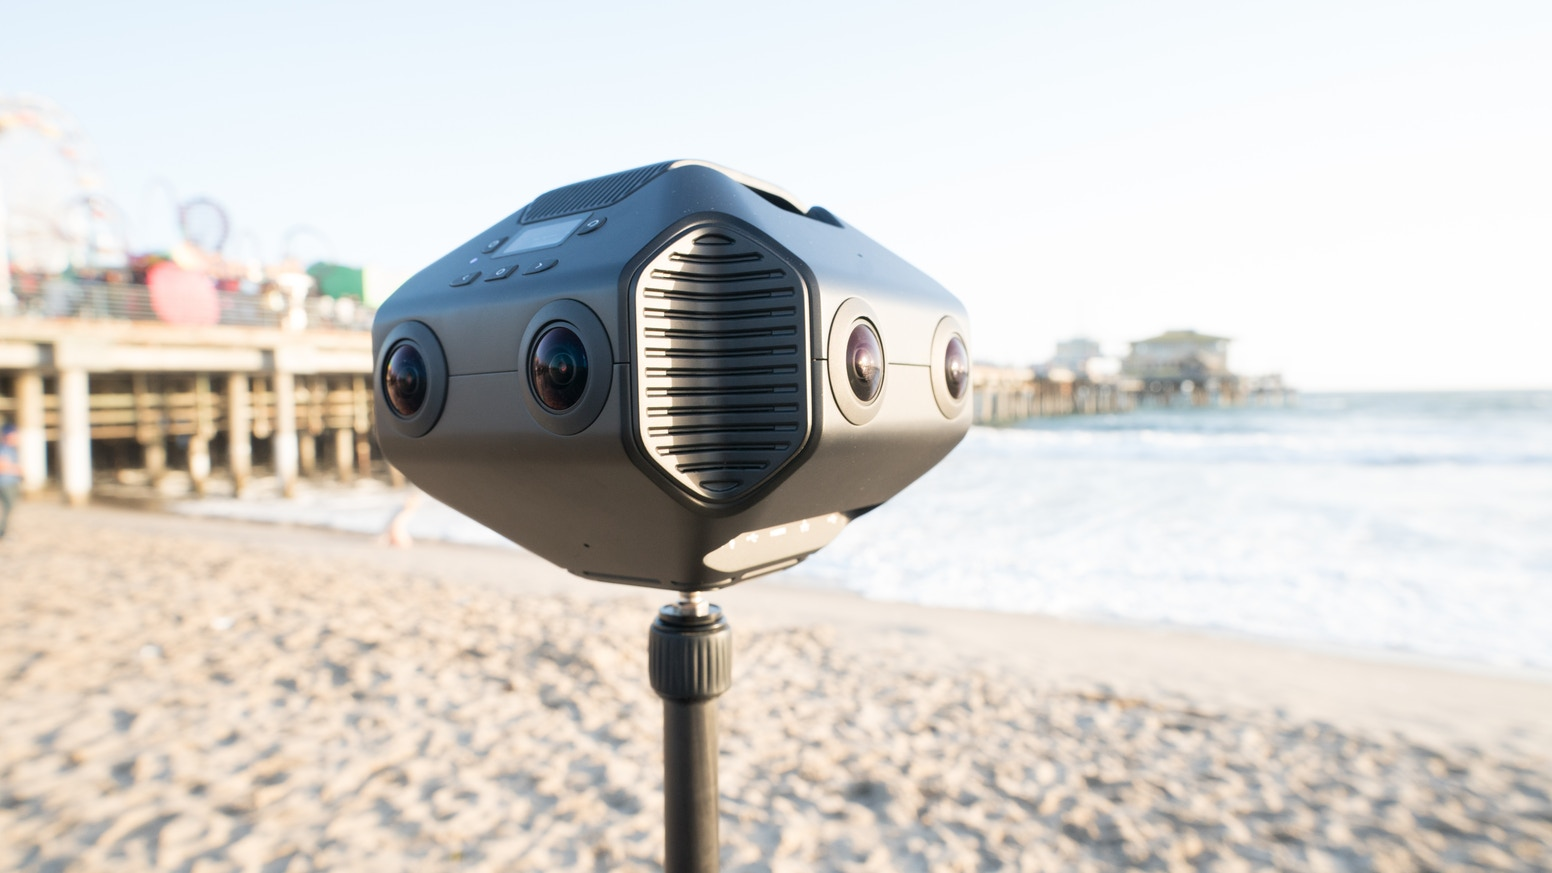 Capture 12K images and 8K video with world's first 3D 360° VR camera with AI chip for professionals.